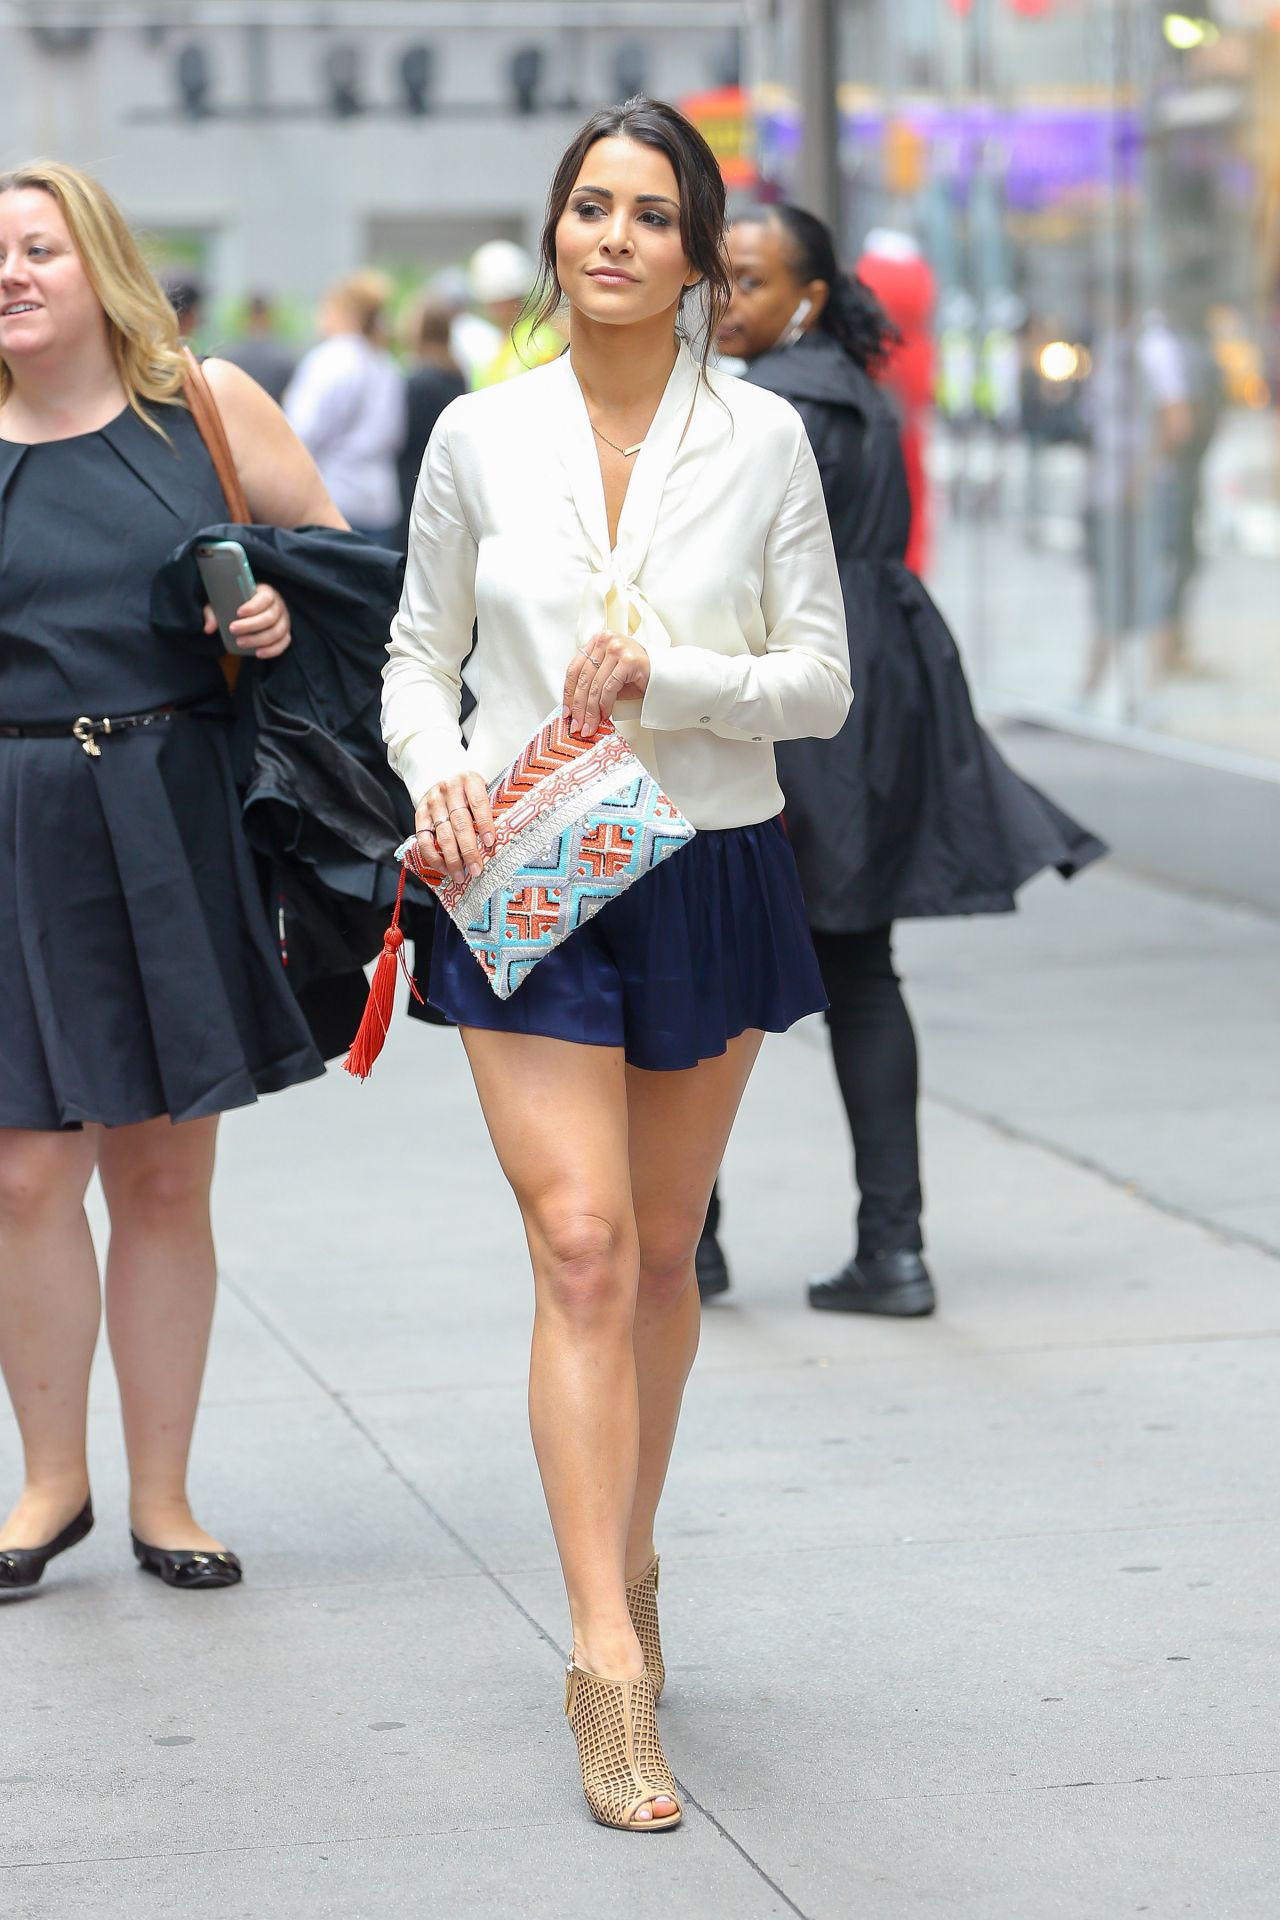 Andi Dorfman Puts On A Leggy Display In Times Square Nyc